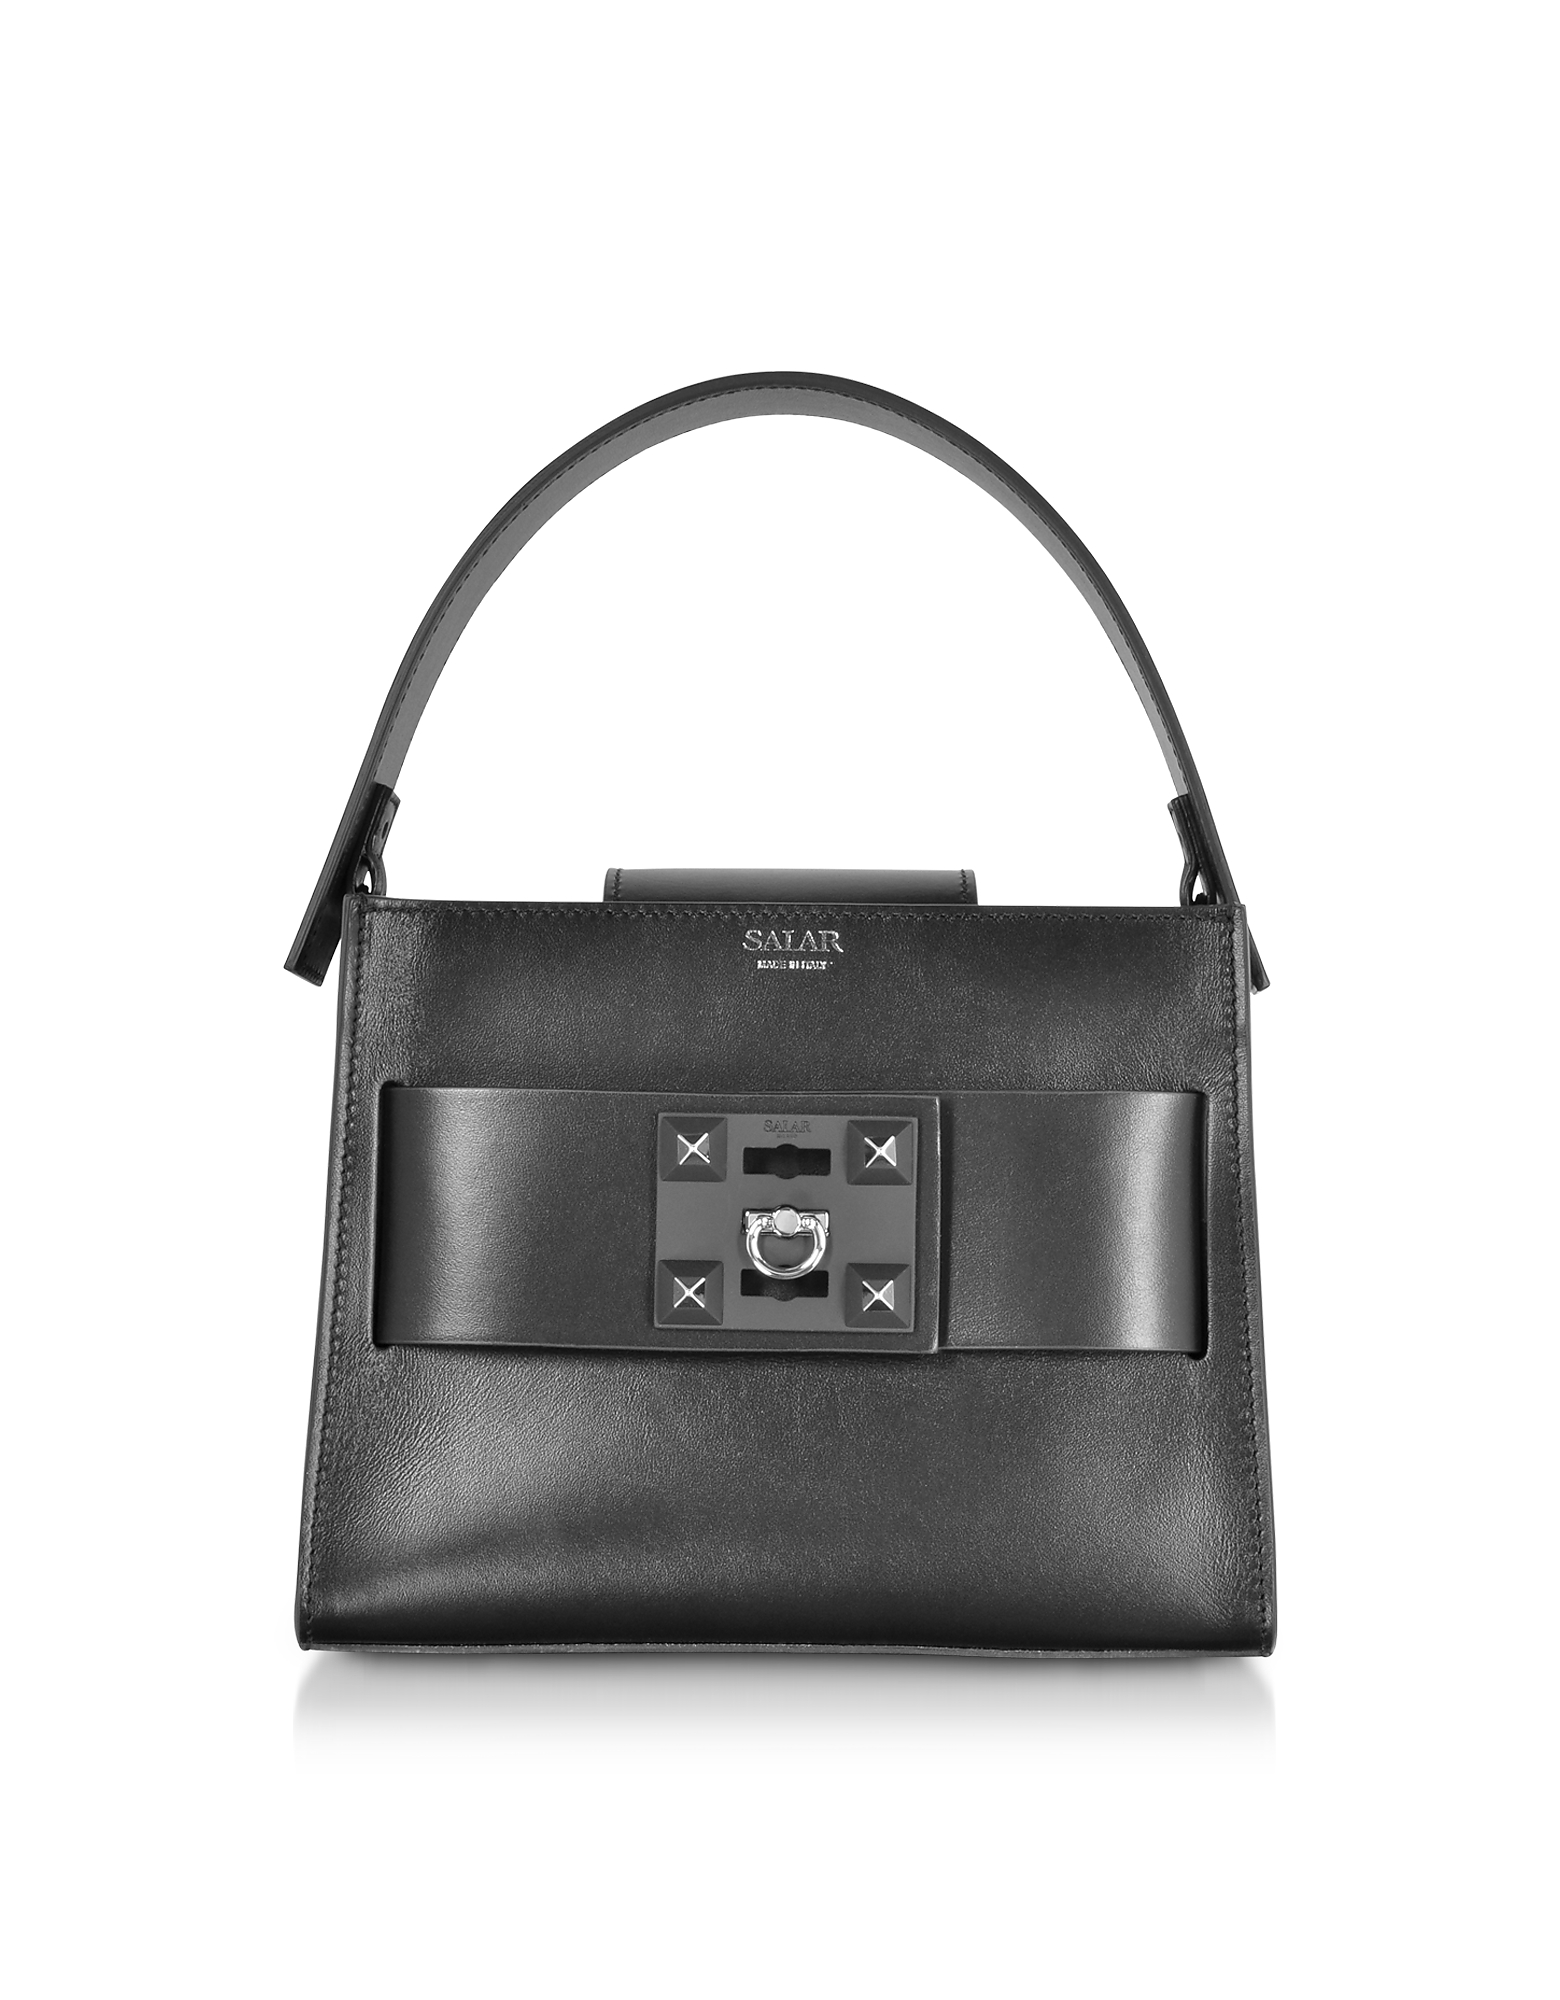 Salar LUDO BASIC BLACK LEATHER SATCHEL BAG